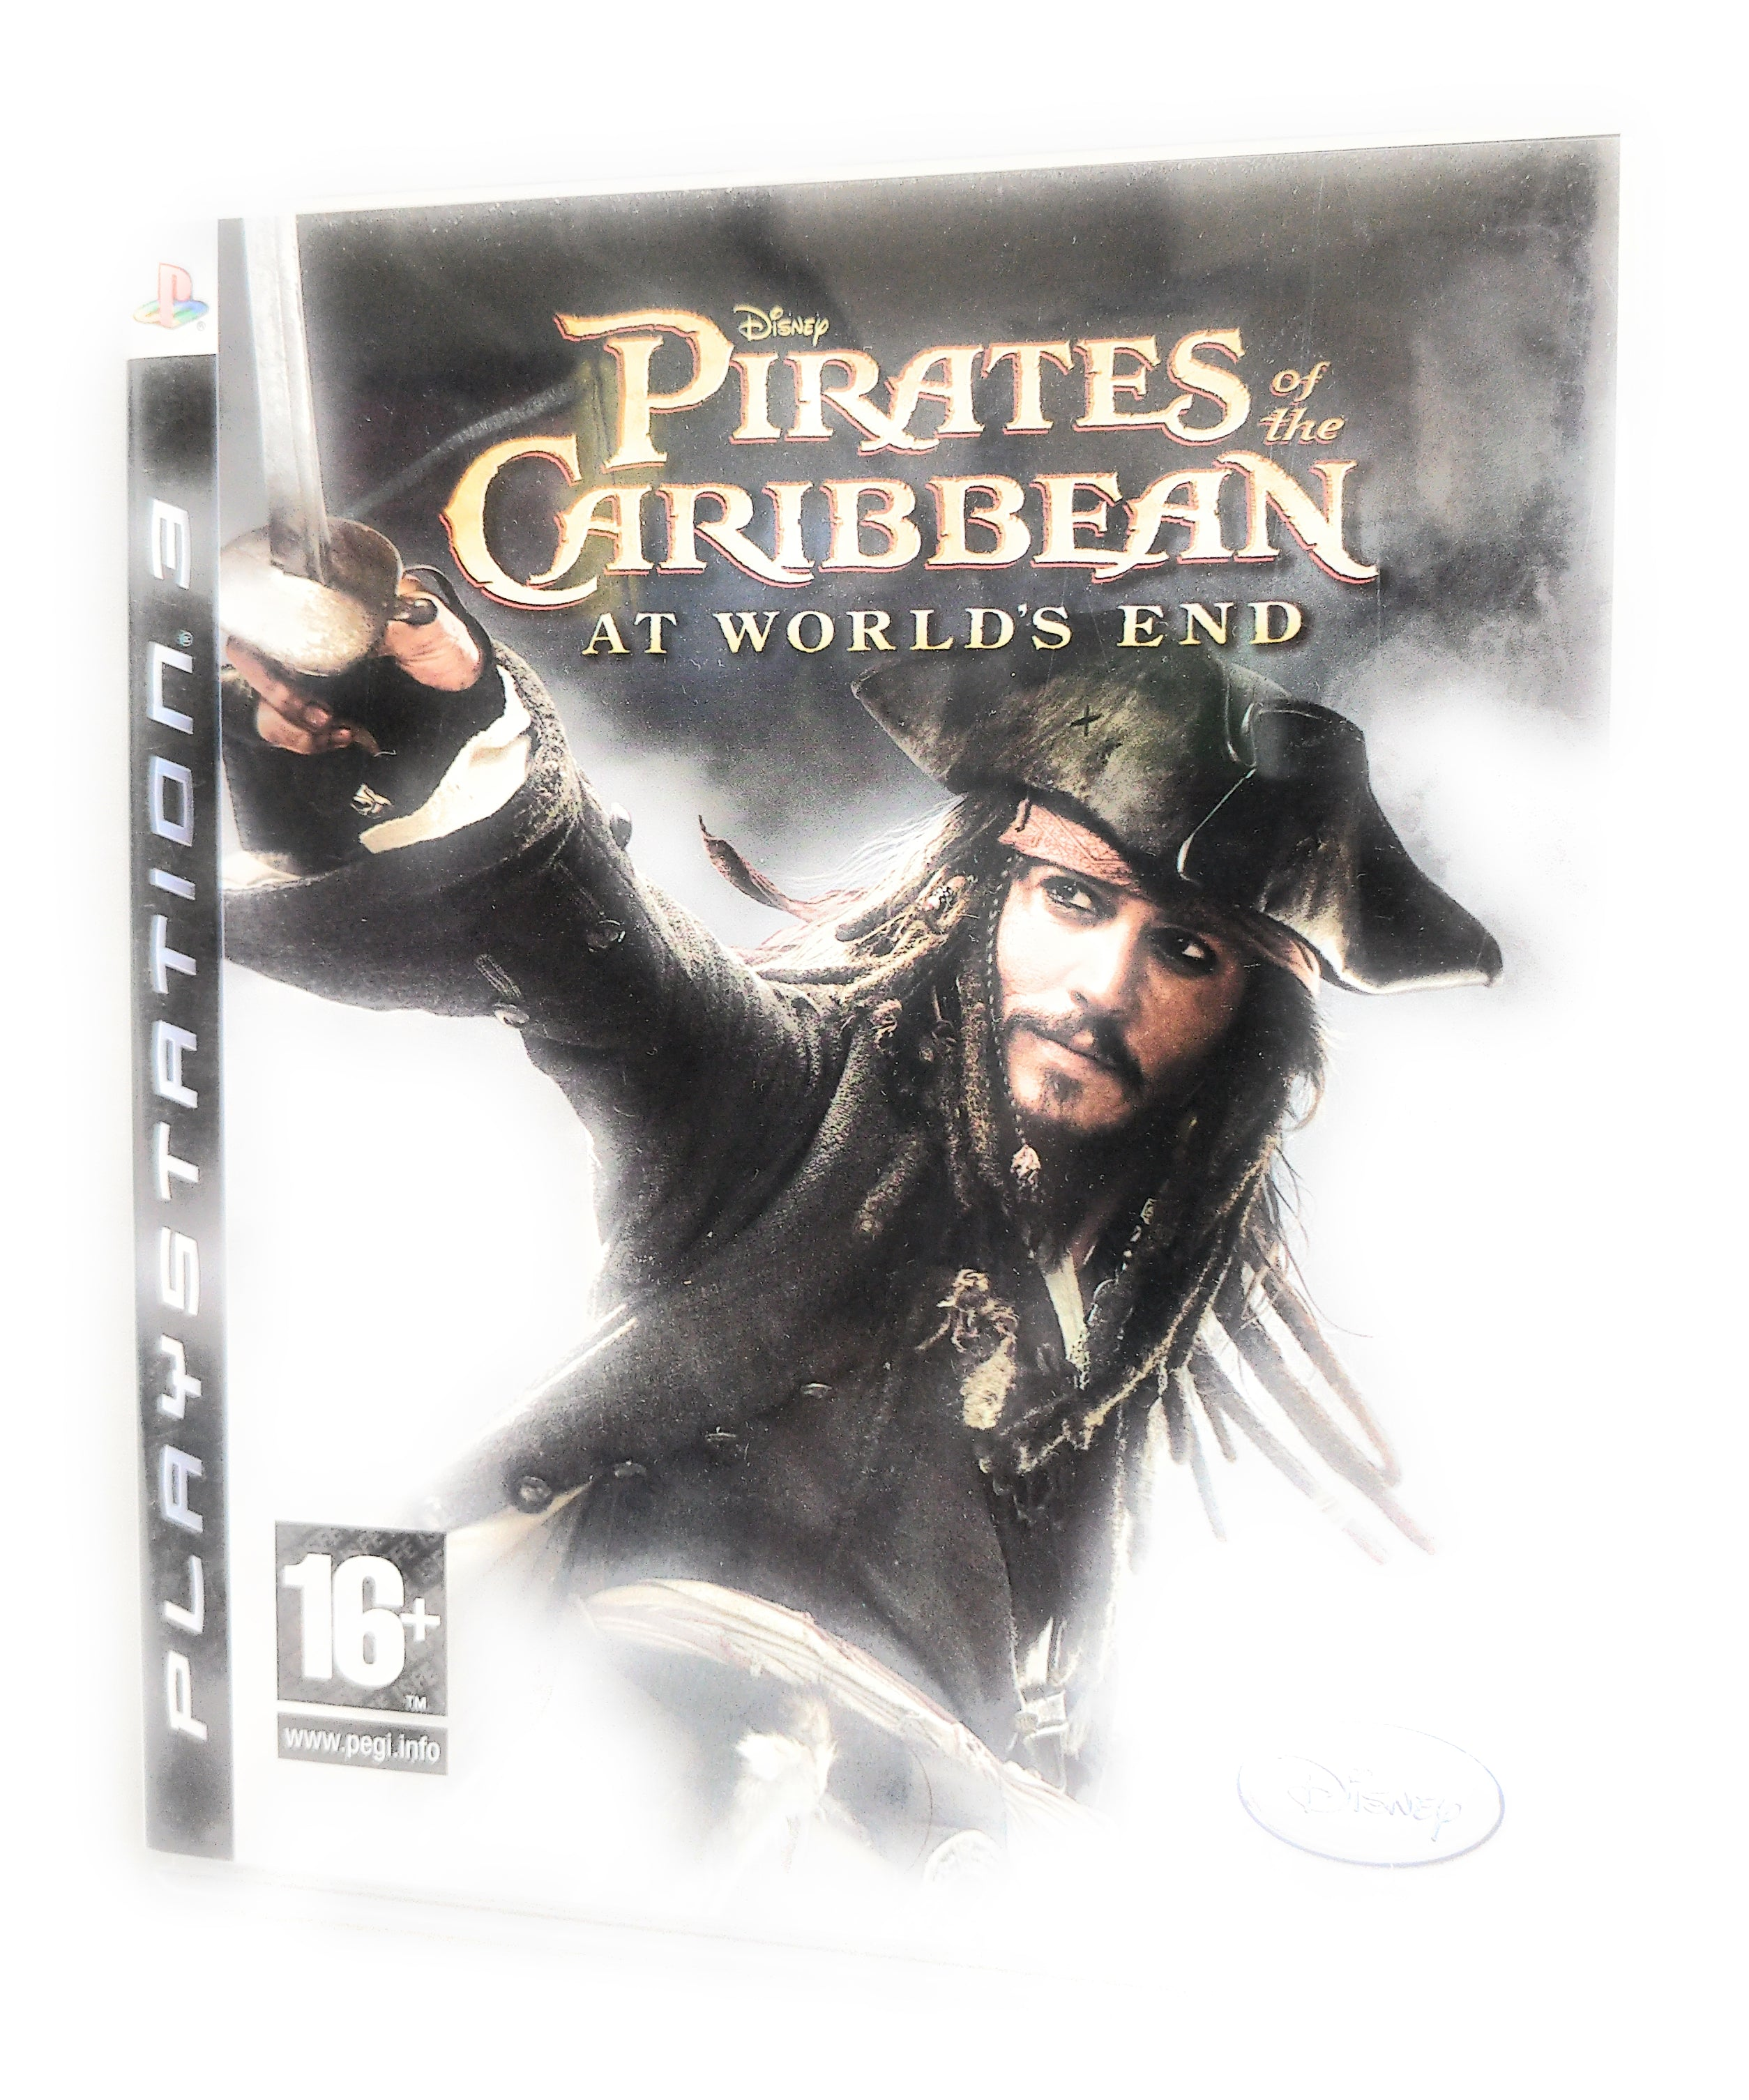 Sony Playstation 3 PS3 Console Game - Pirates of the Caribbean at Worlds End